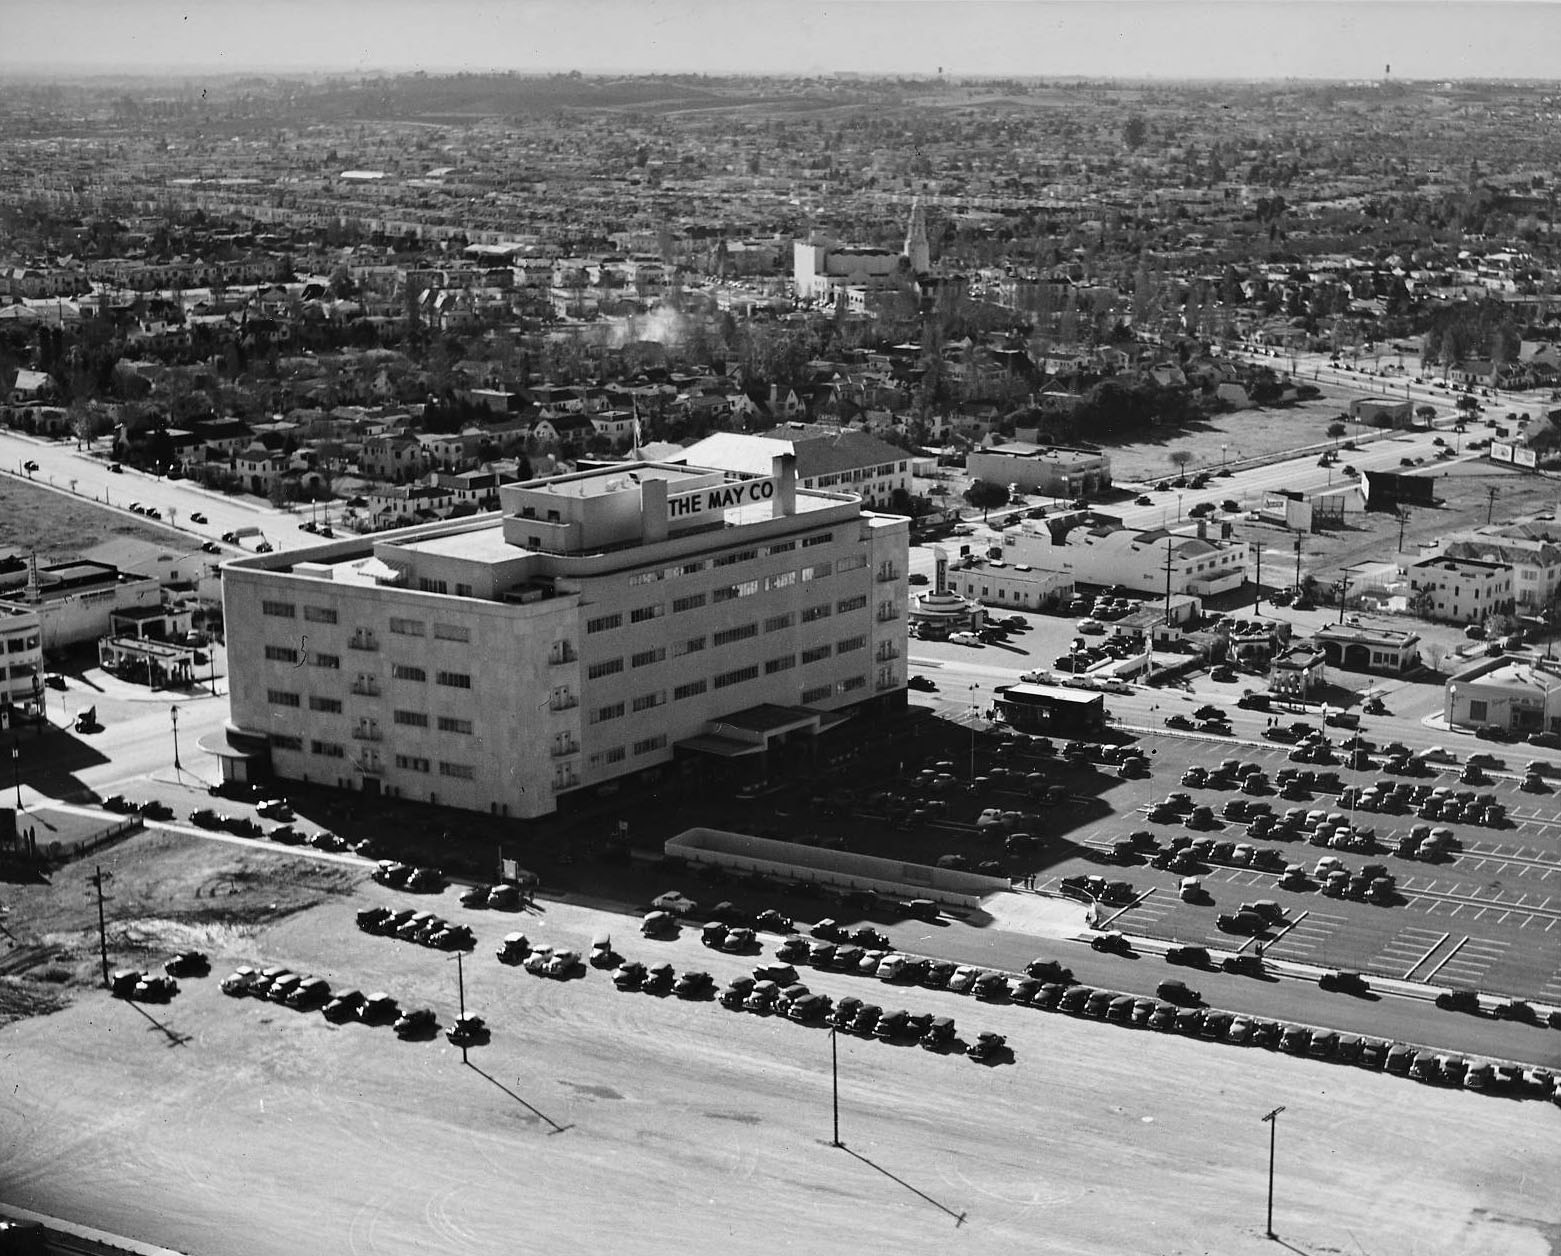 1940 Aerial view of the recently finished May Company at Wilshire and Fairfax. Note the expansive parking lot behind the department store.